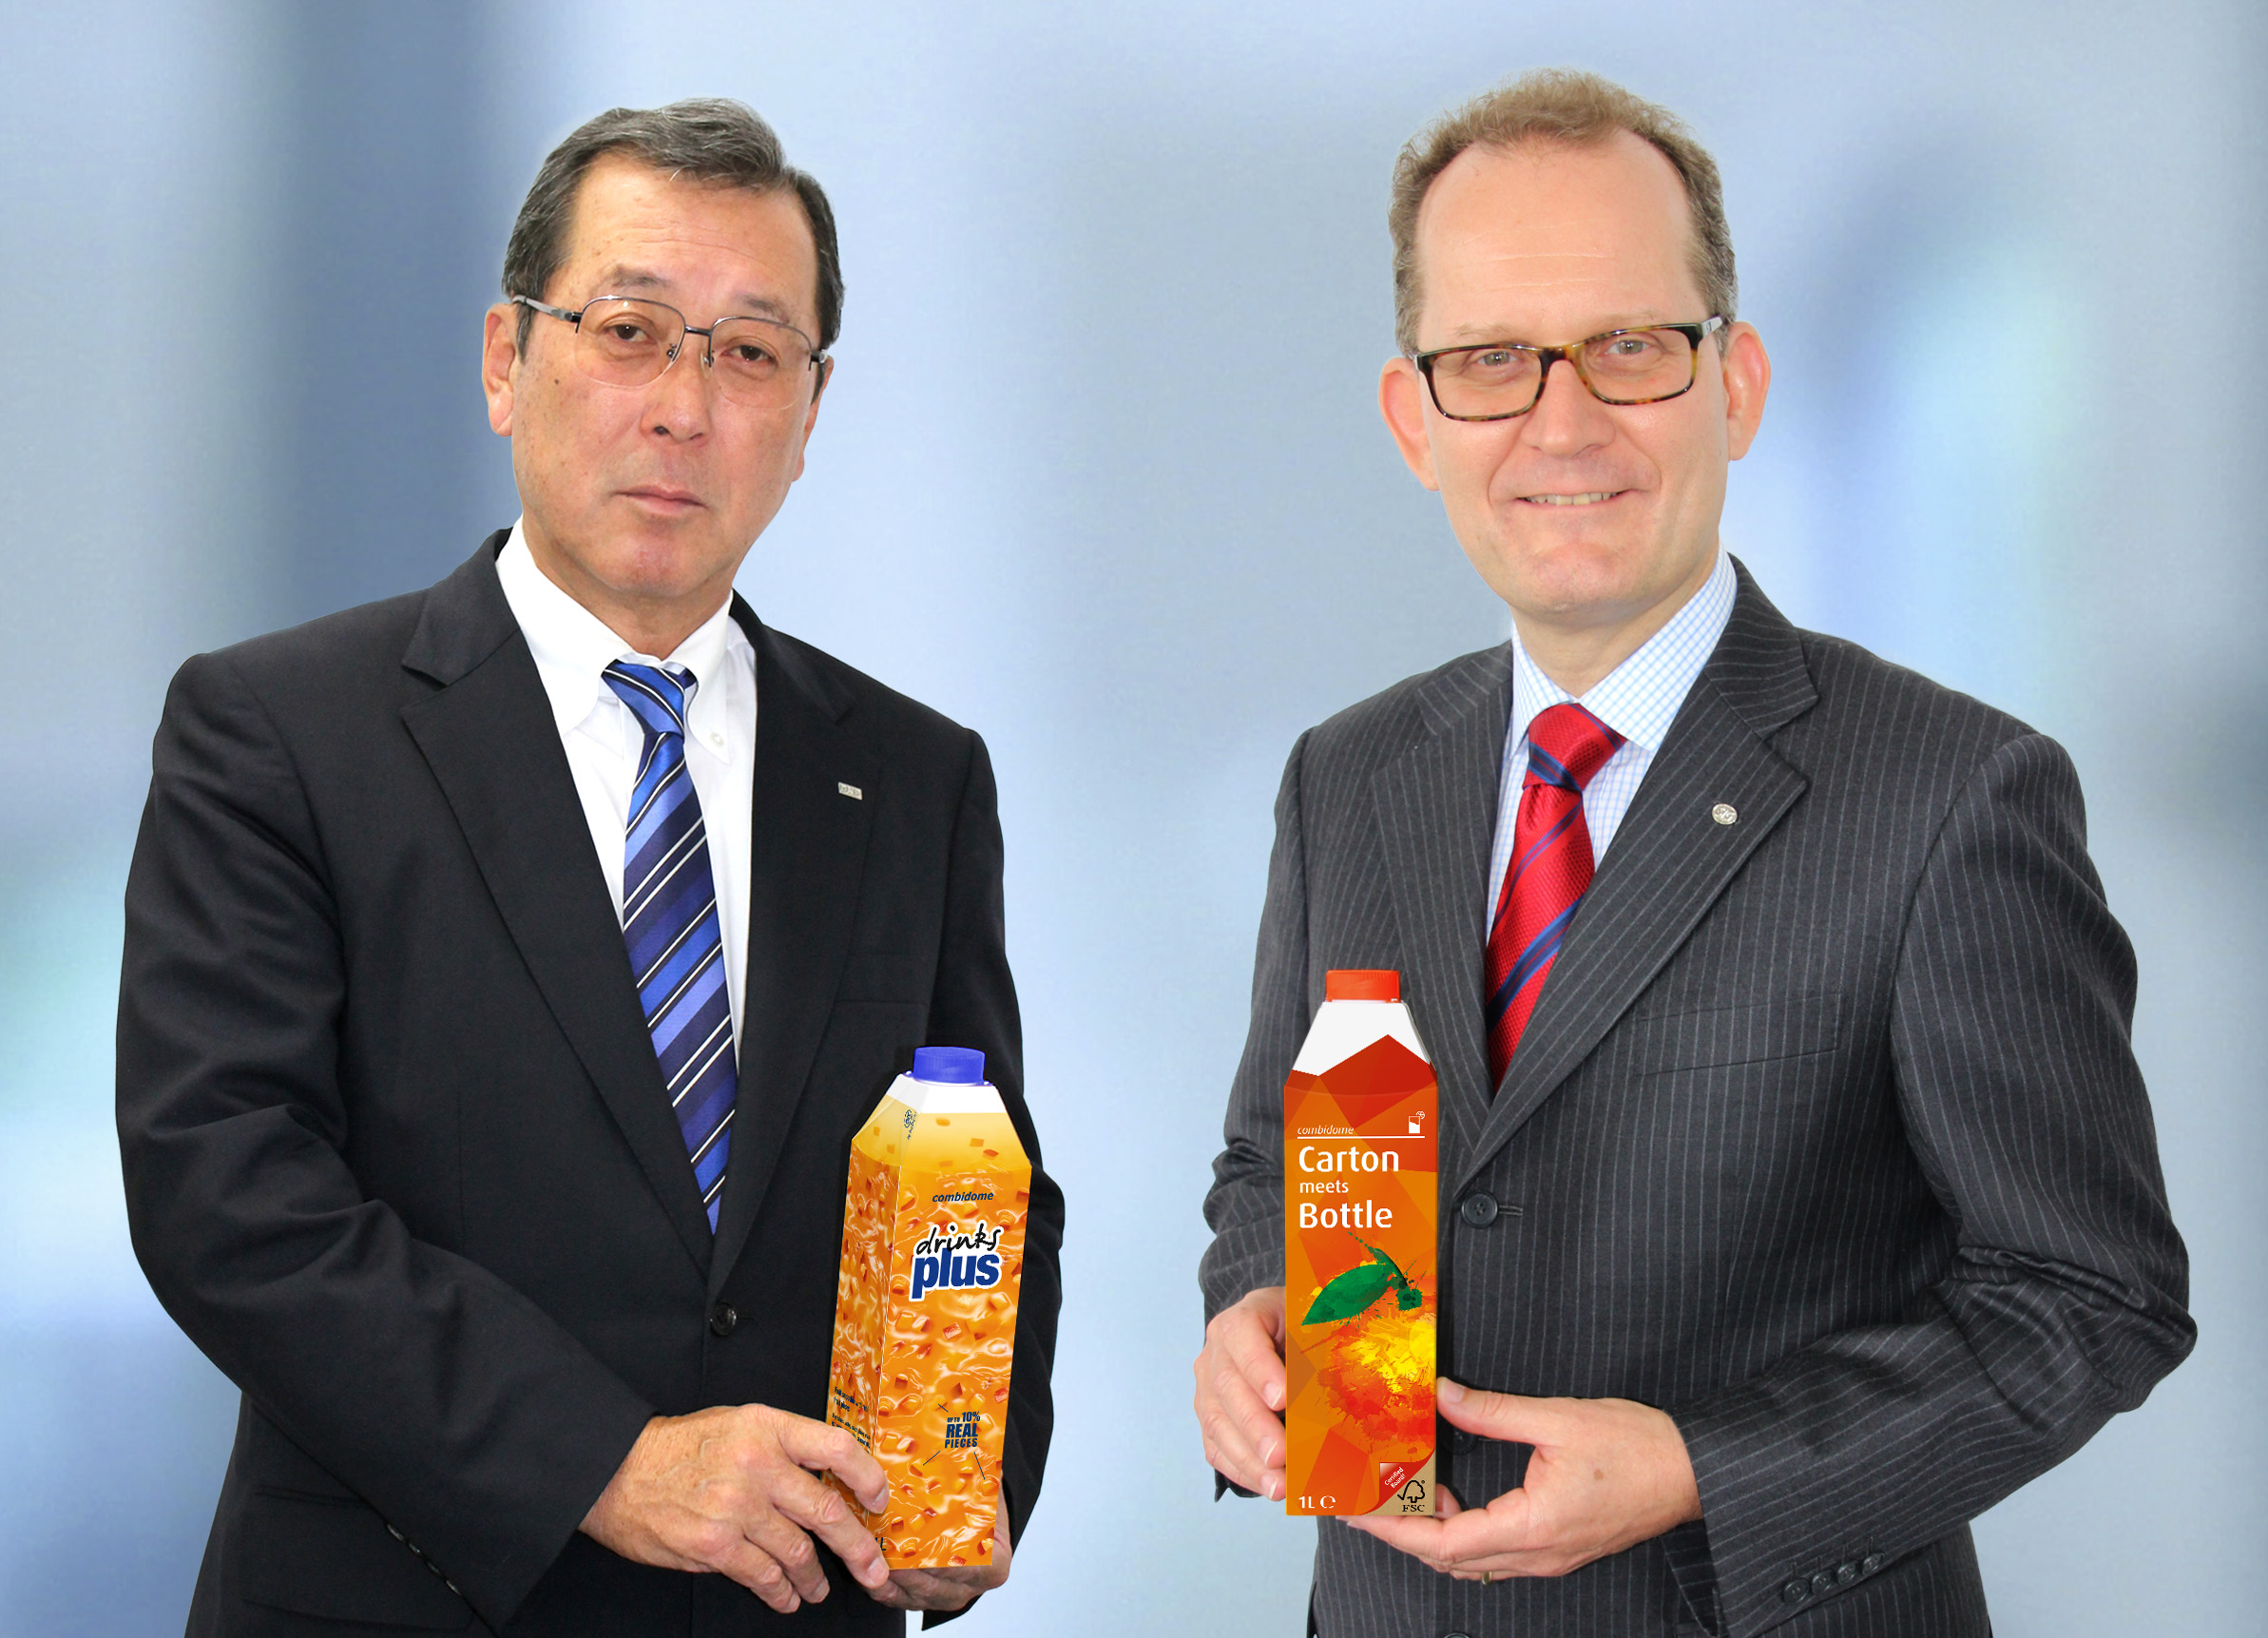 Kouichi Hashimoto, Senior Executive Corporate Officer bei DNP (links), und Markus Boehm, Chief Market Officer bei SIG Combibloc (rechts)